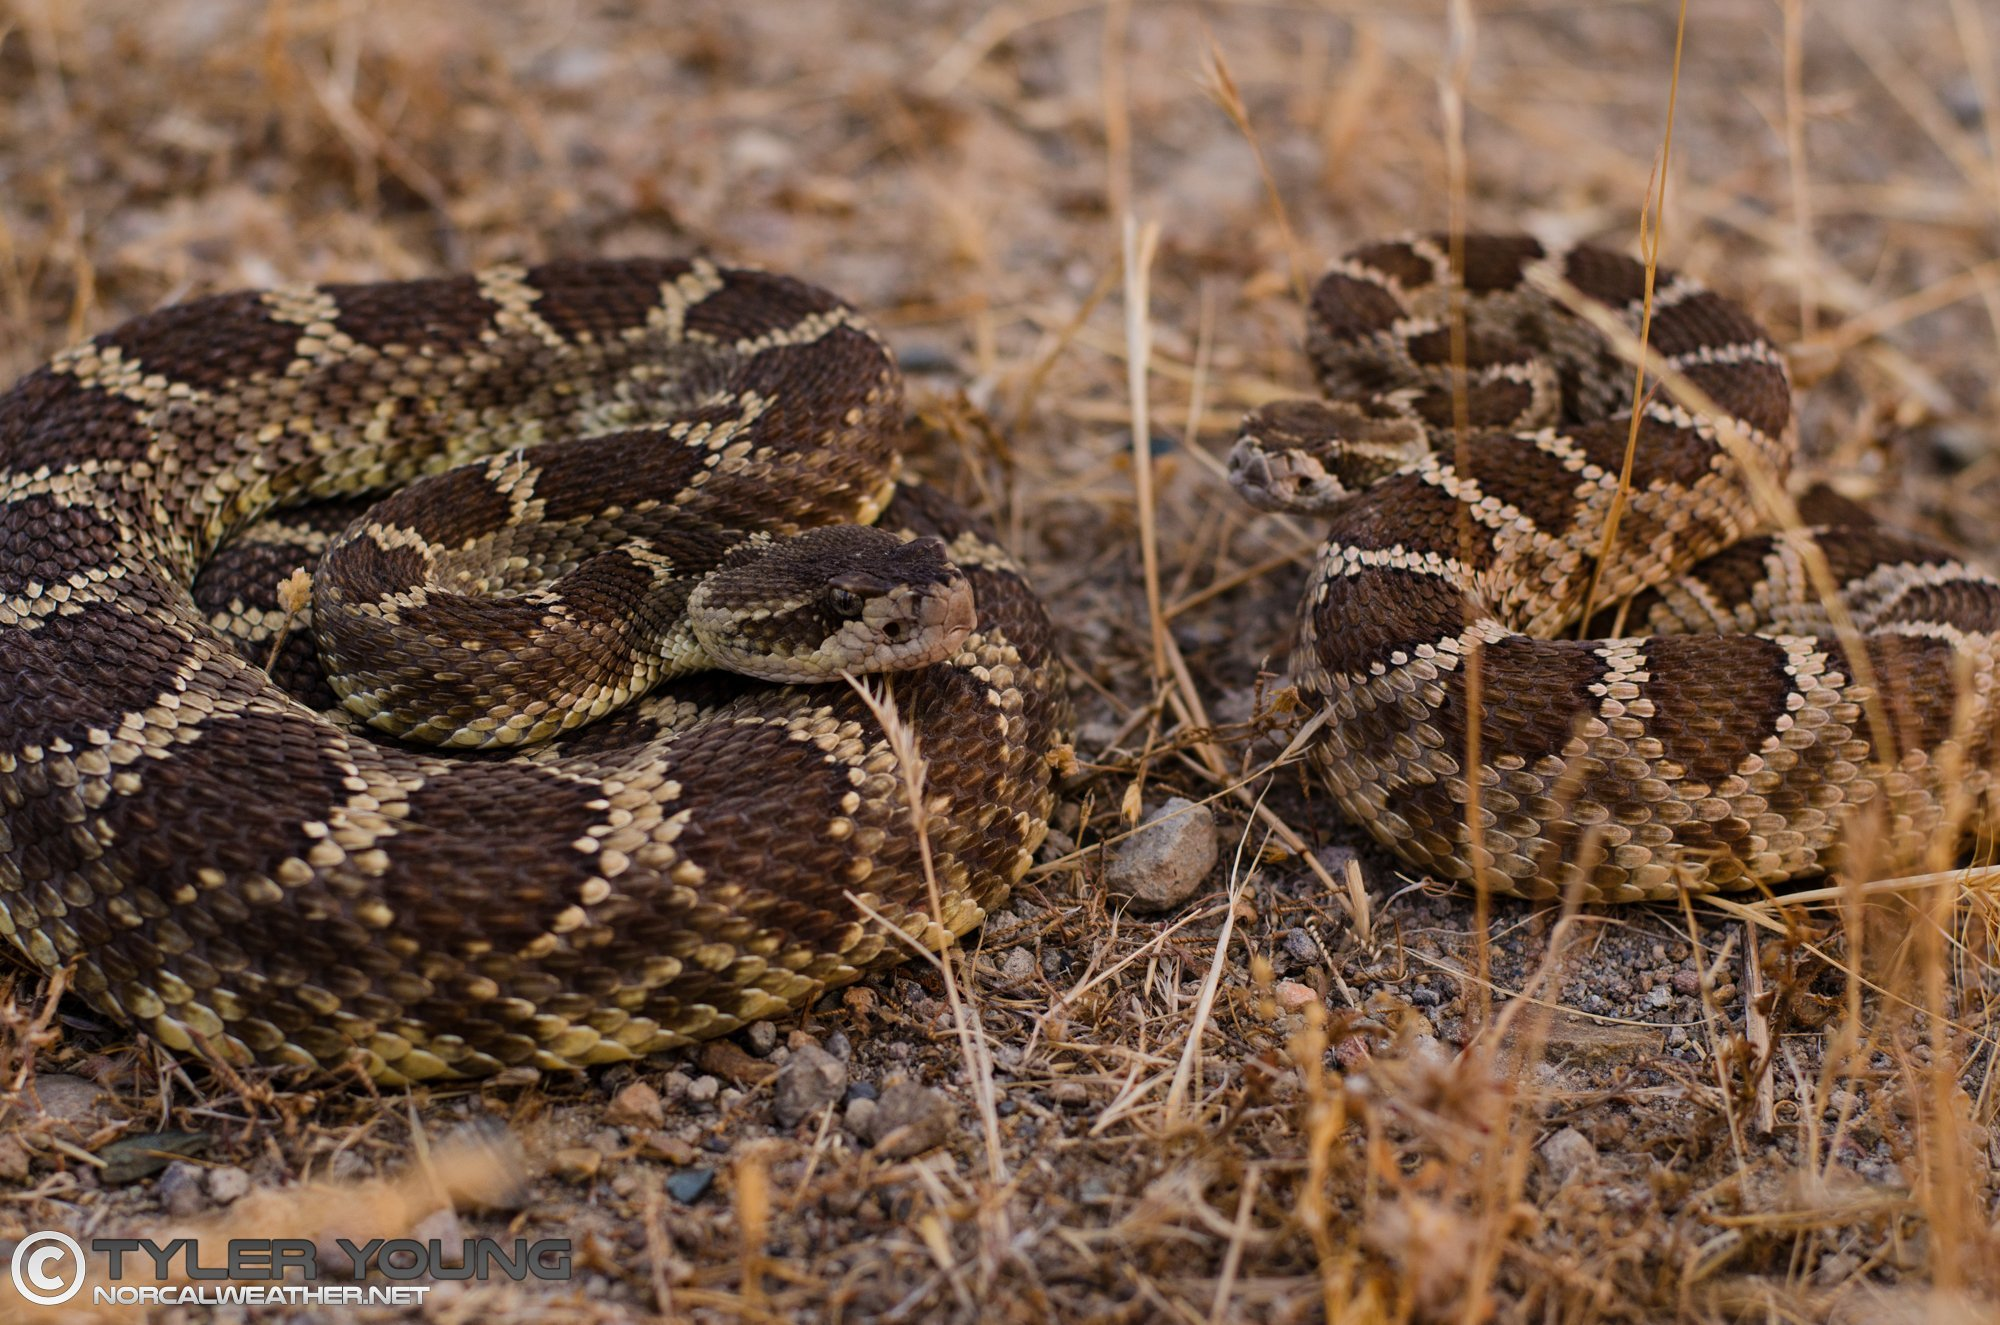 The Photography of Rattlesnakes